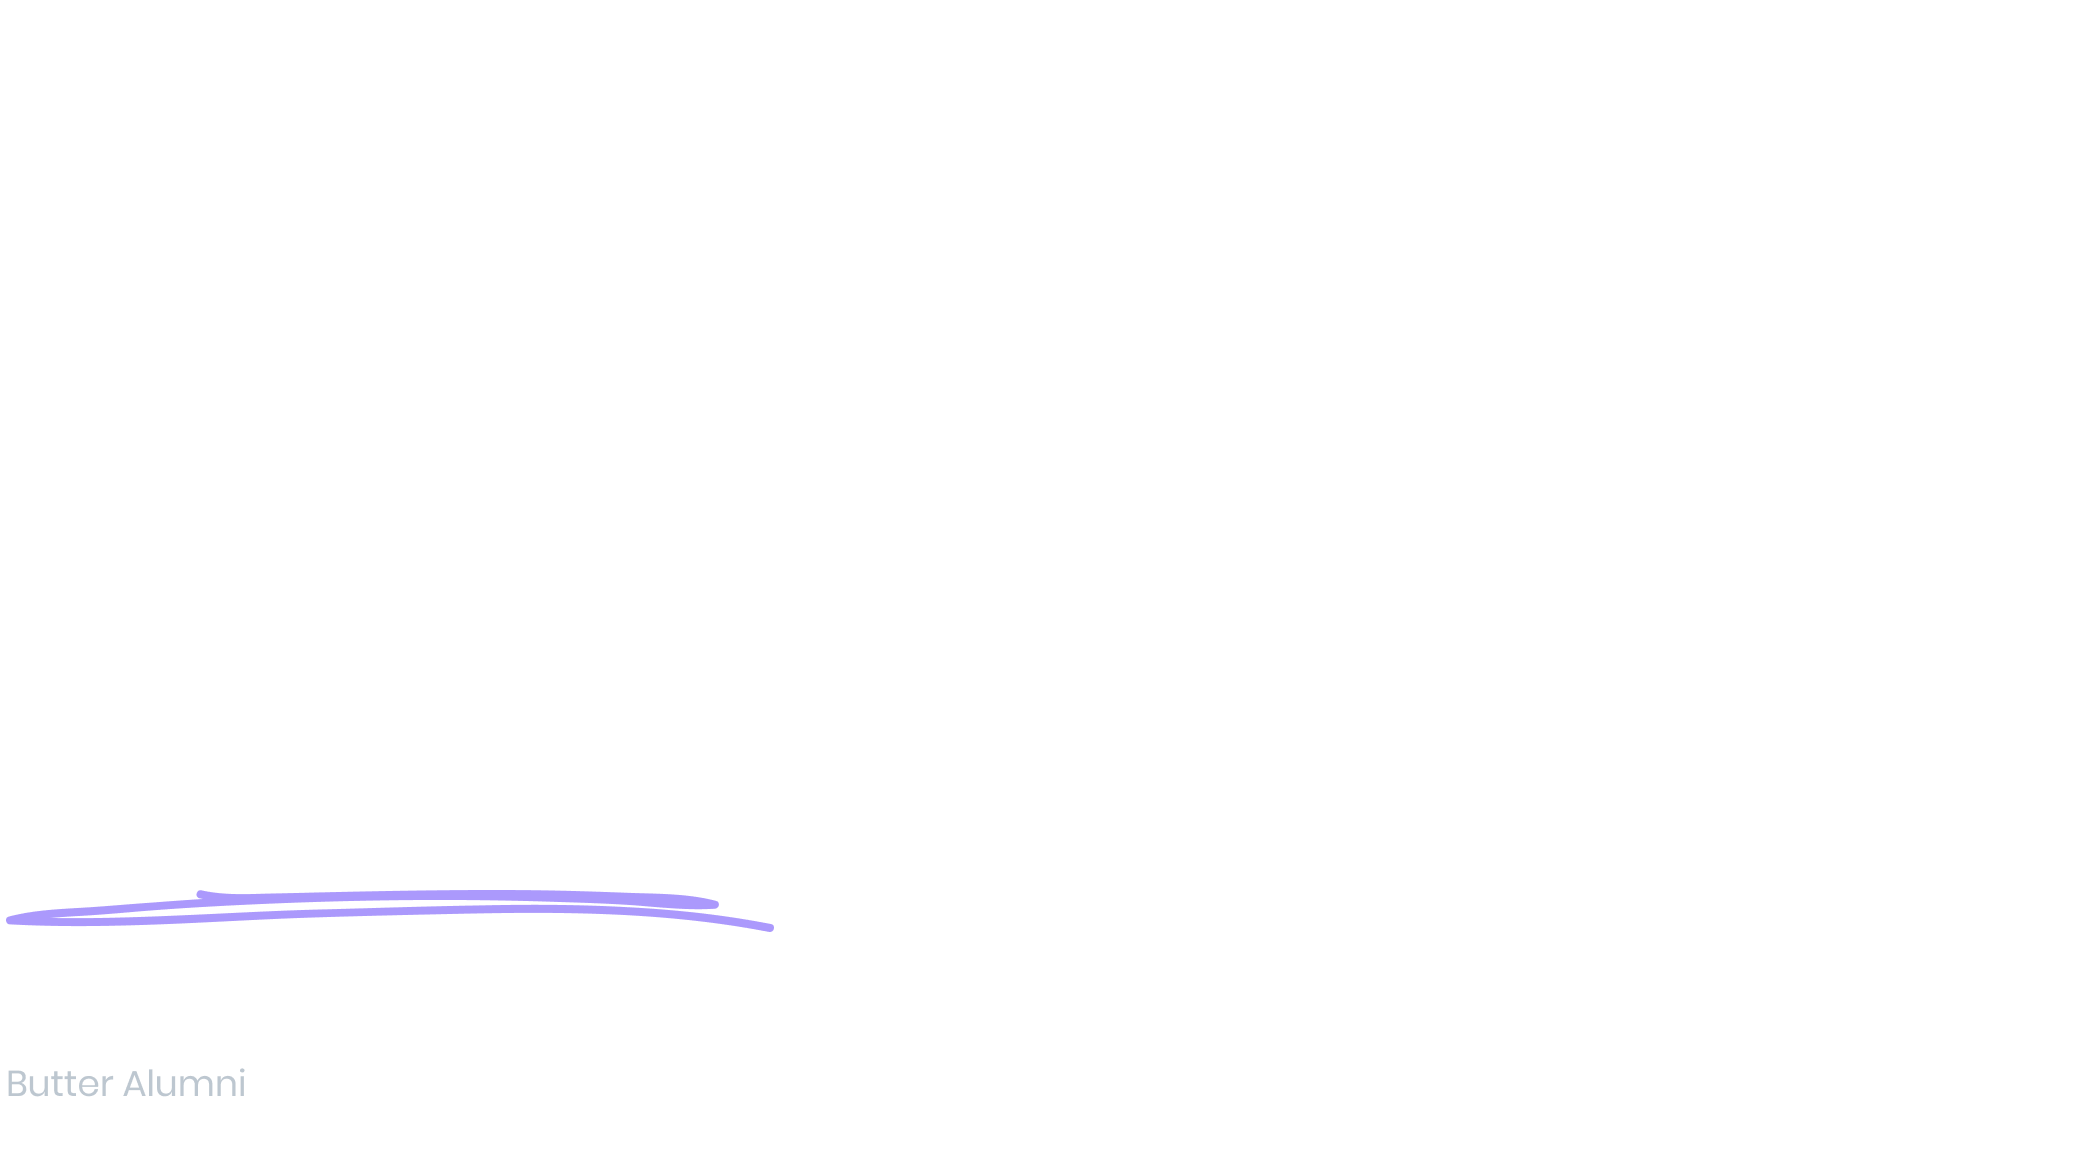 I loved all of the stories and examples from your past and career. I also liked that we got actual hands-on experience. - Paige